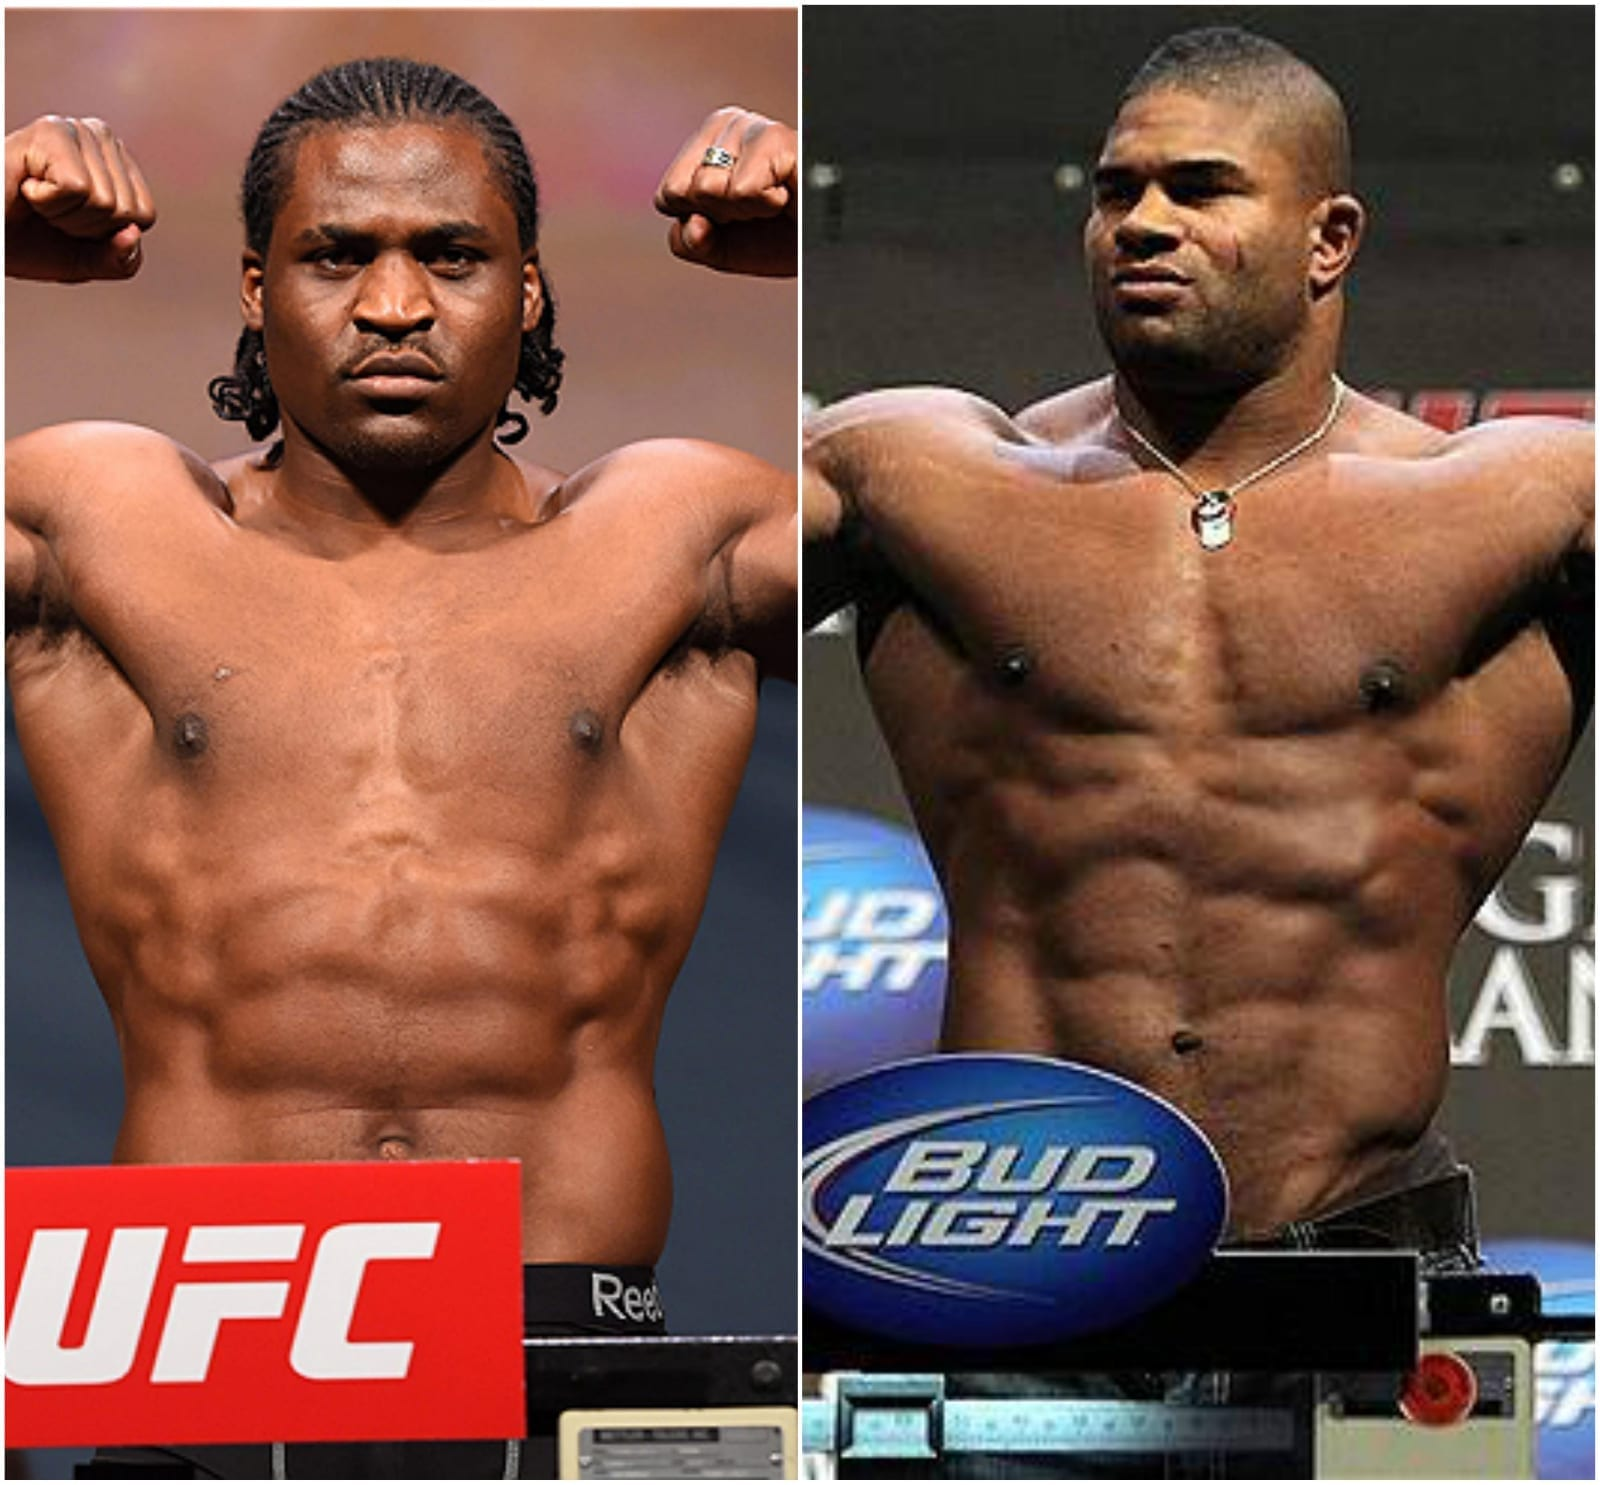 Francis Ngannou Calls Out Alistair Overeem For Ufc 215